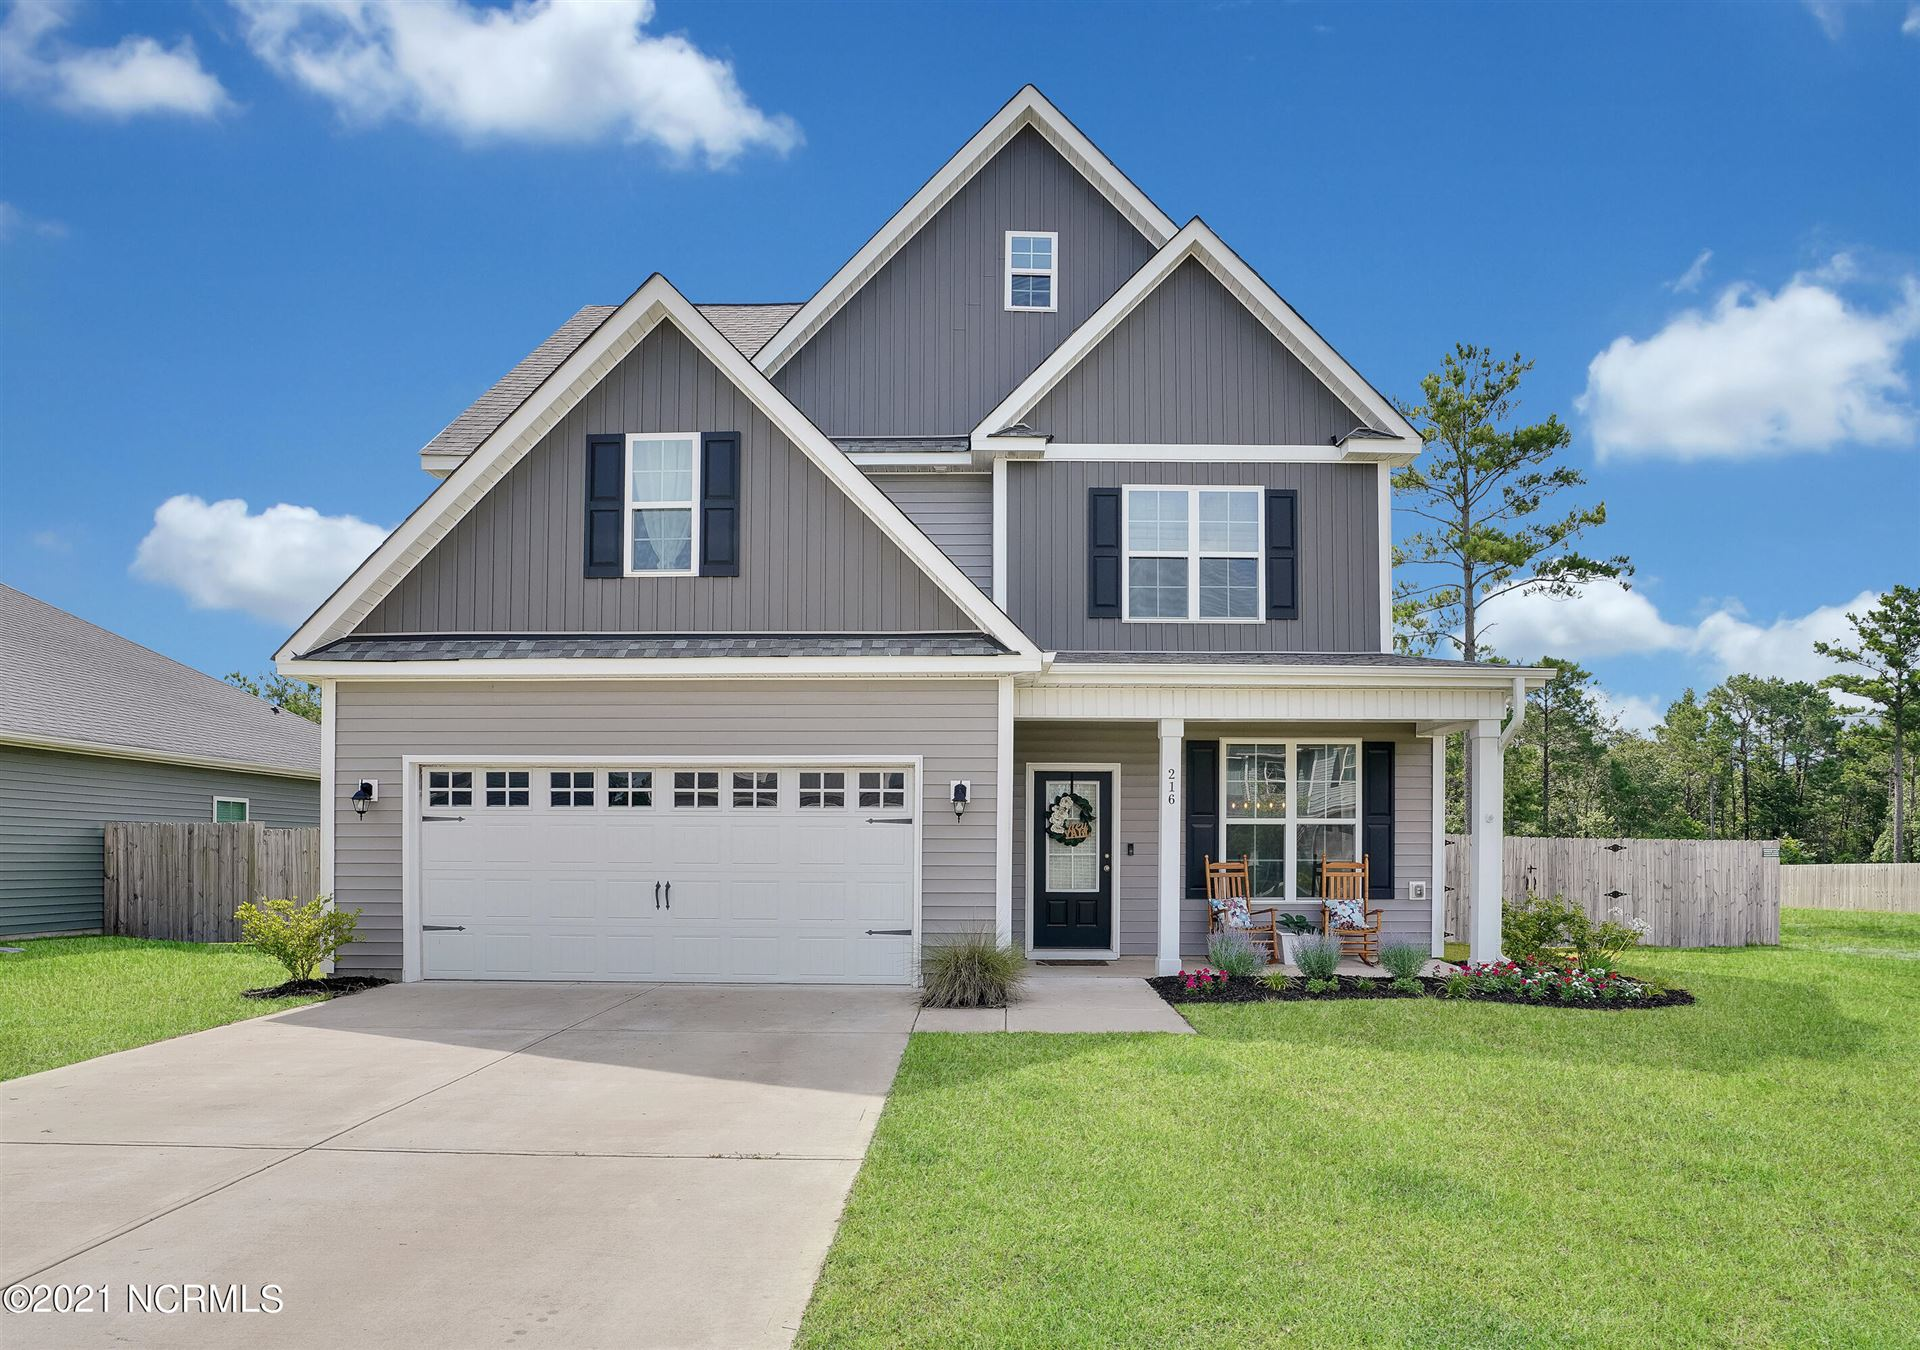 Photo for 216 Salty Dog Lane, Sneads Ferry, NC 28460 (MLS # 100280236)